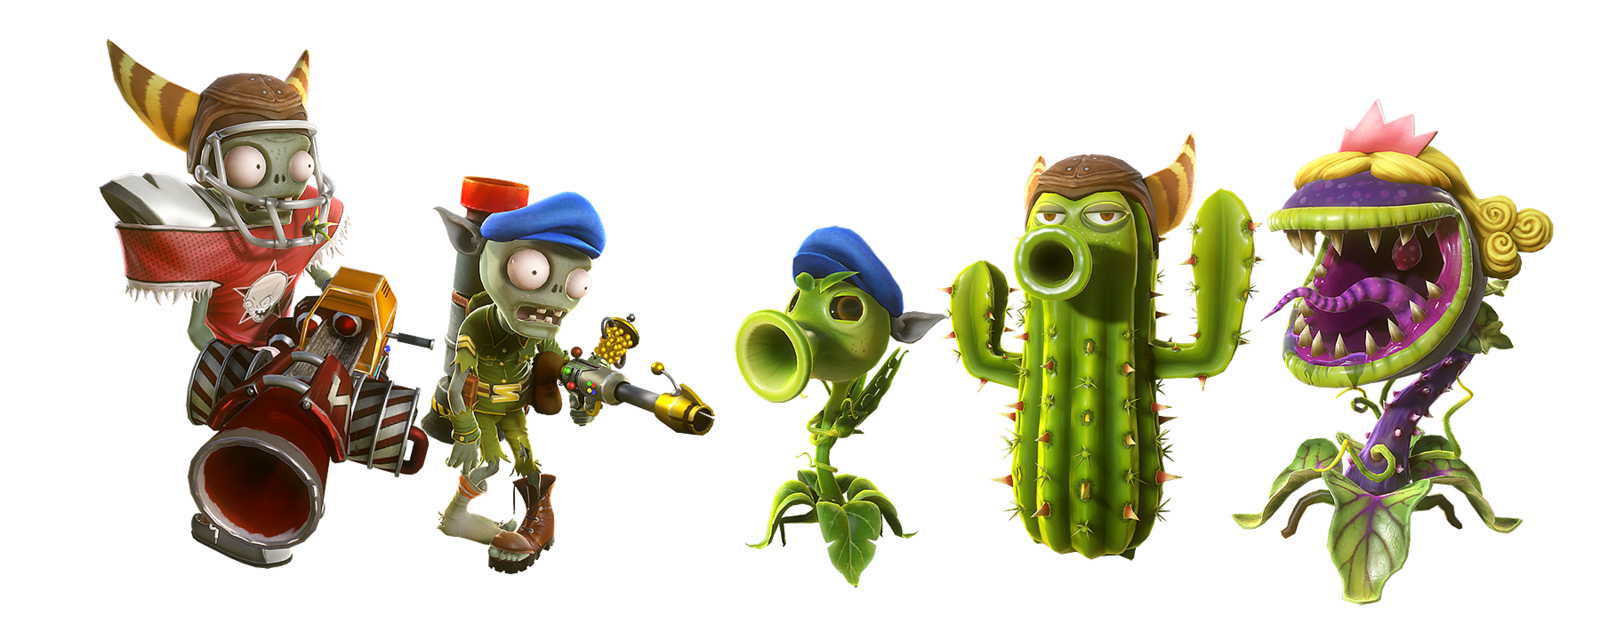 Plants vs zombies garden warfare plants characters